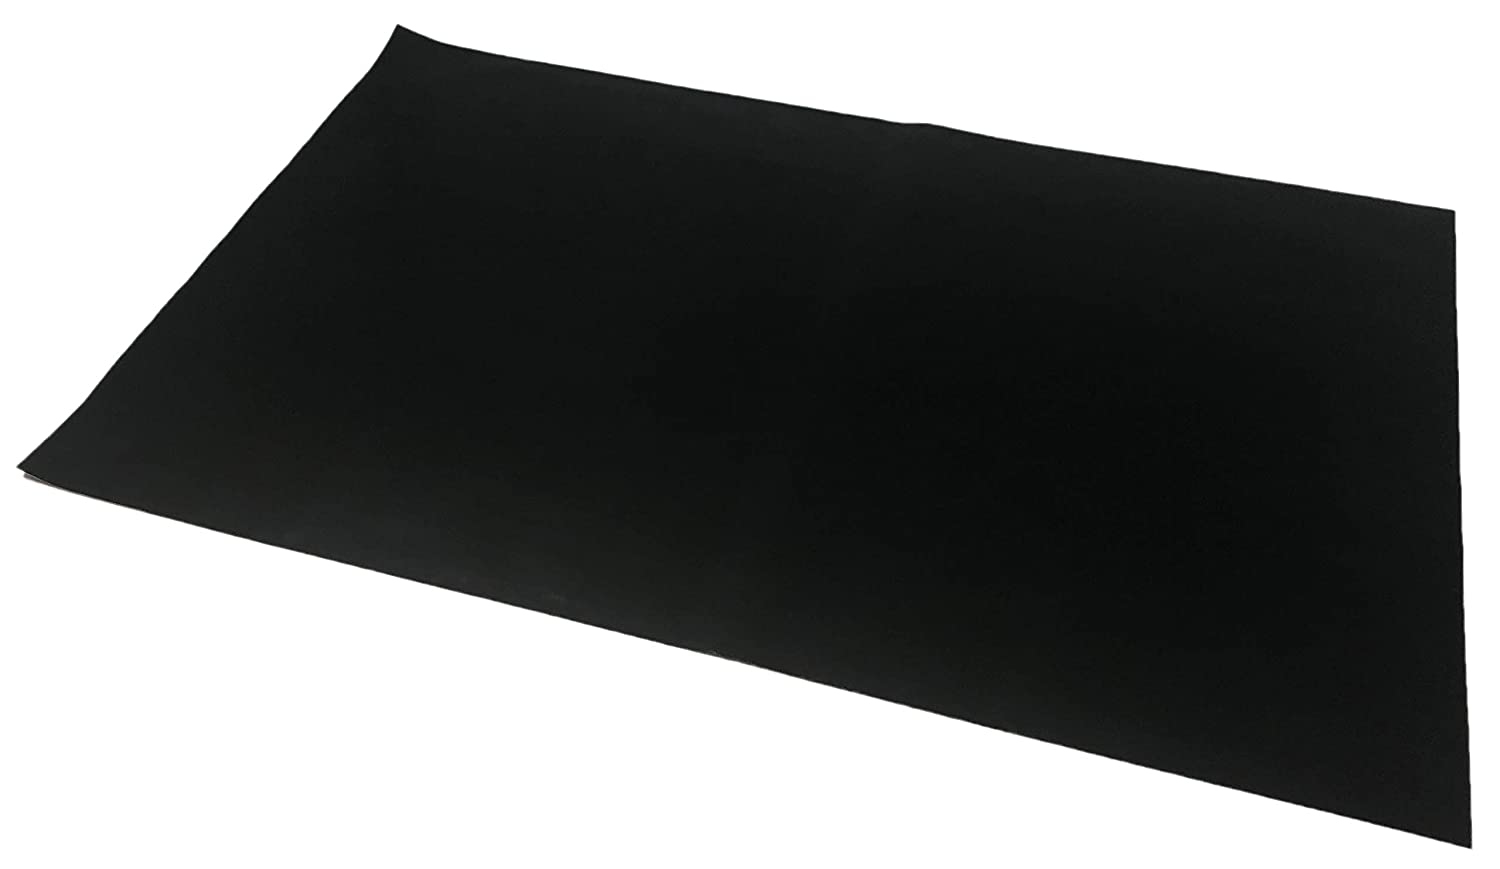 """Handy Gourmet - Non-Stick Oven Liner Professional Grade - Never Clean The Bottom Of Your Oven Again - Messy Drips Just Wipe Away 26"""" x 16.25"""" Lasts For Years"""